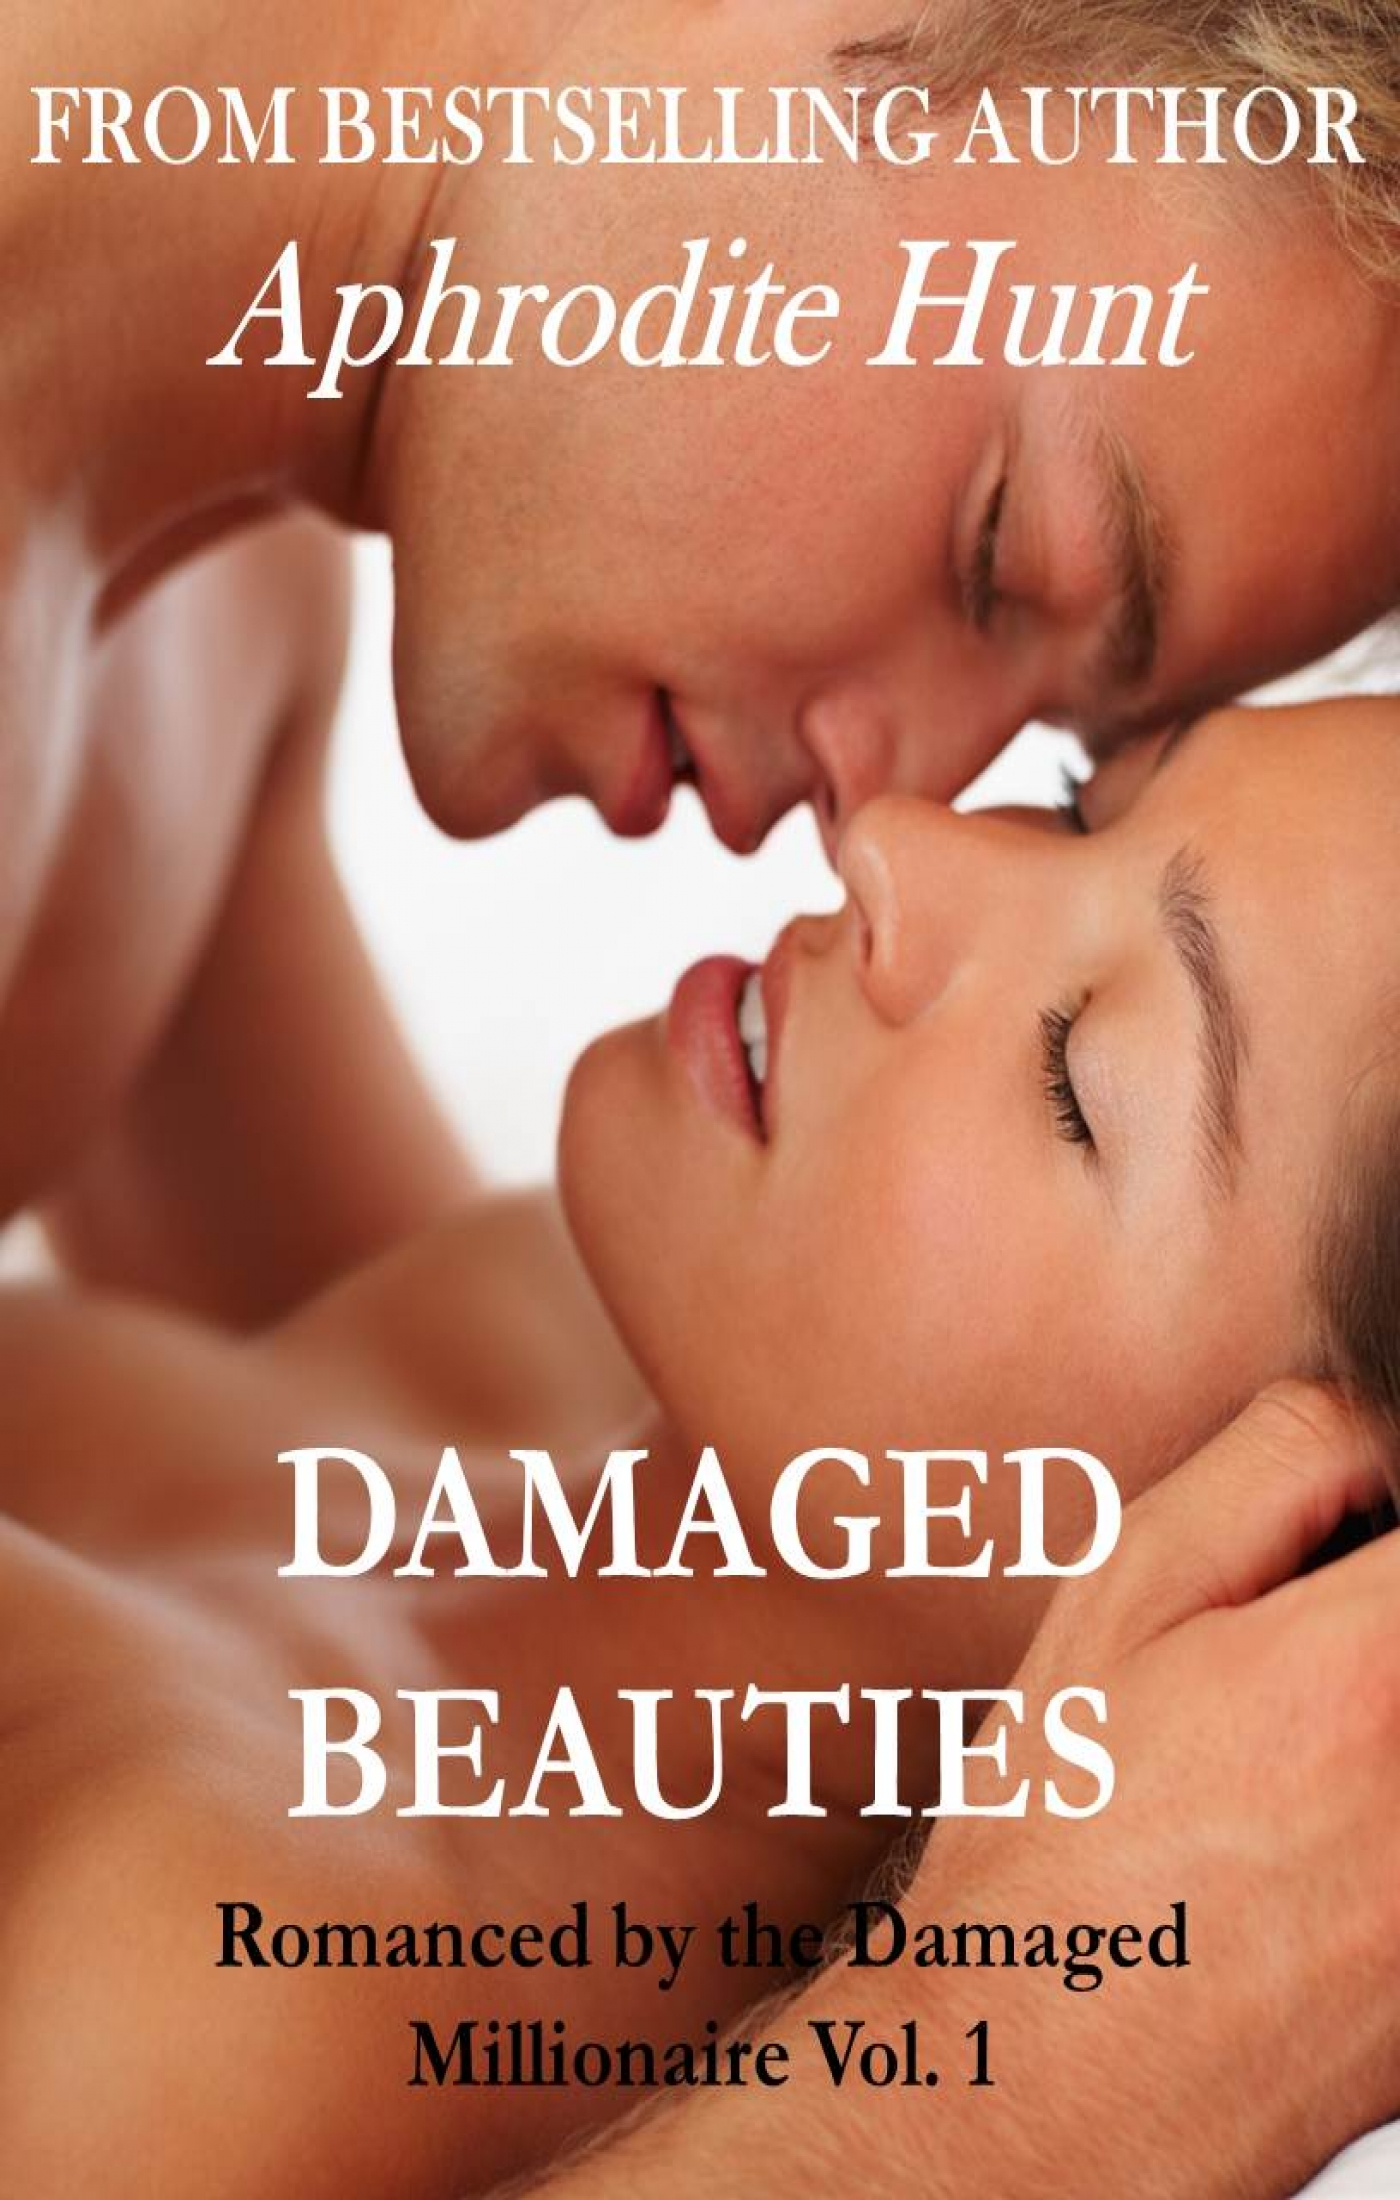 The 'Romanced by the Damaged Millionaire' Series